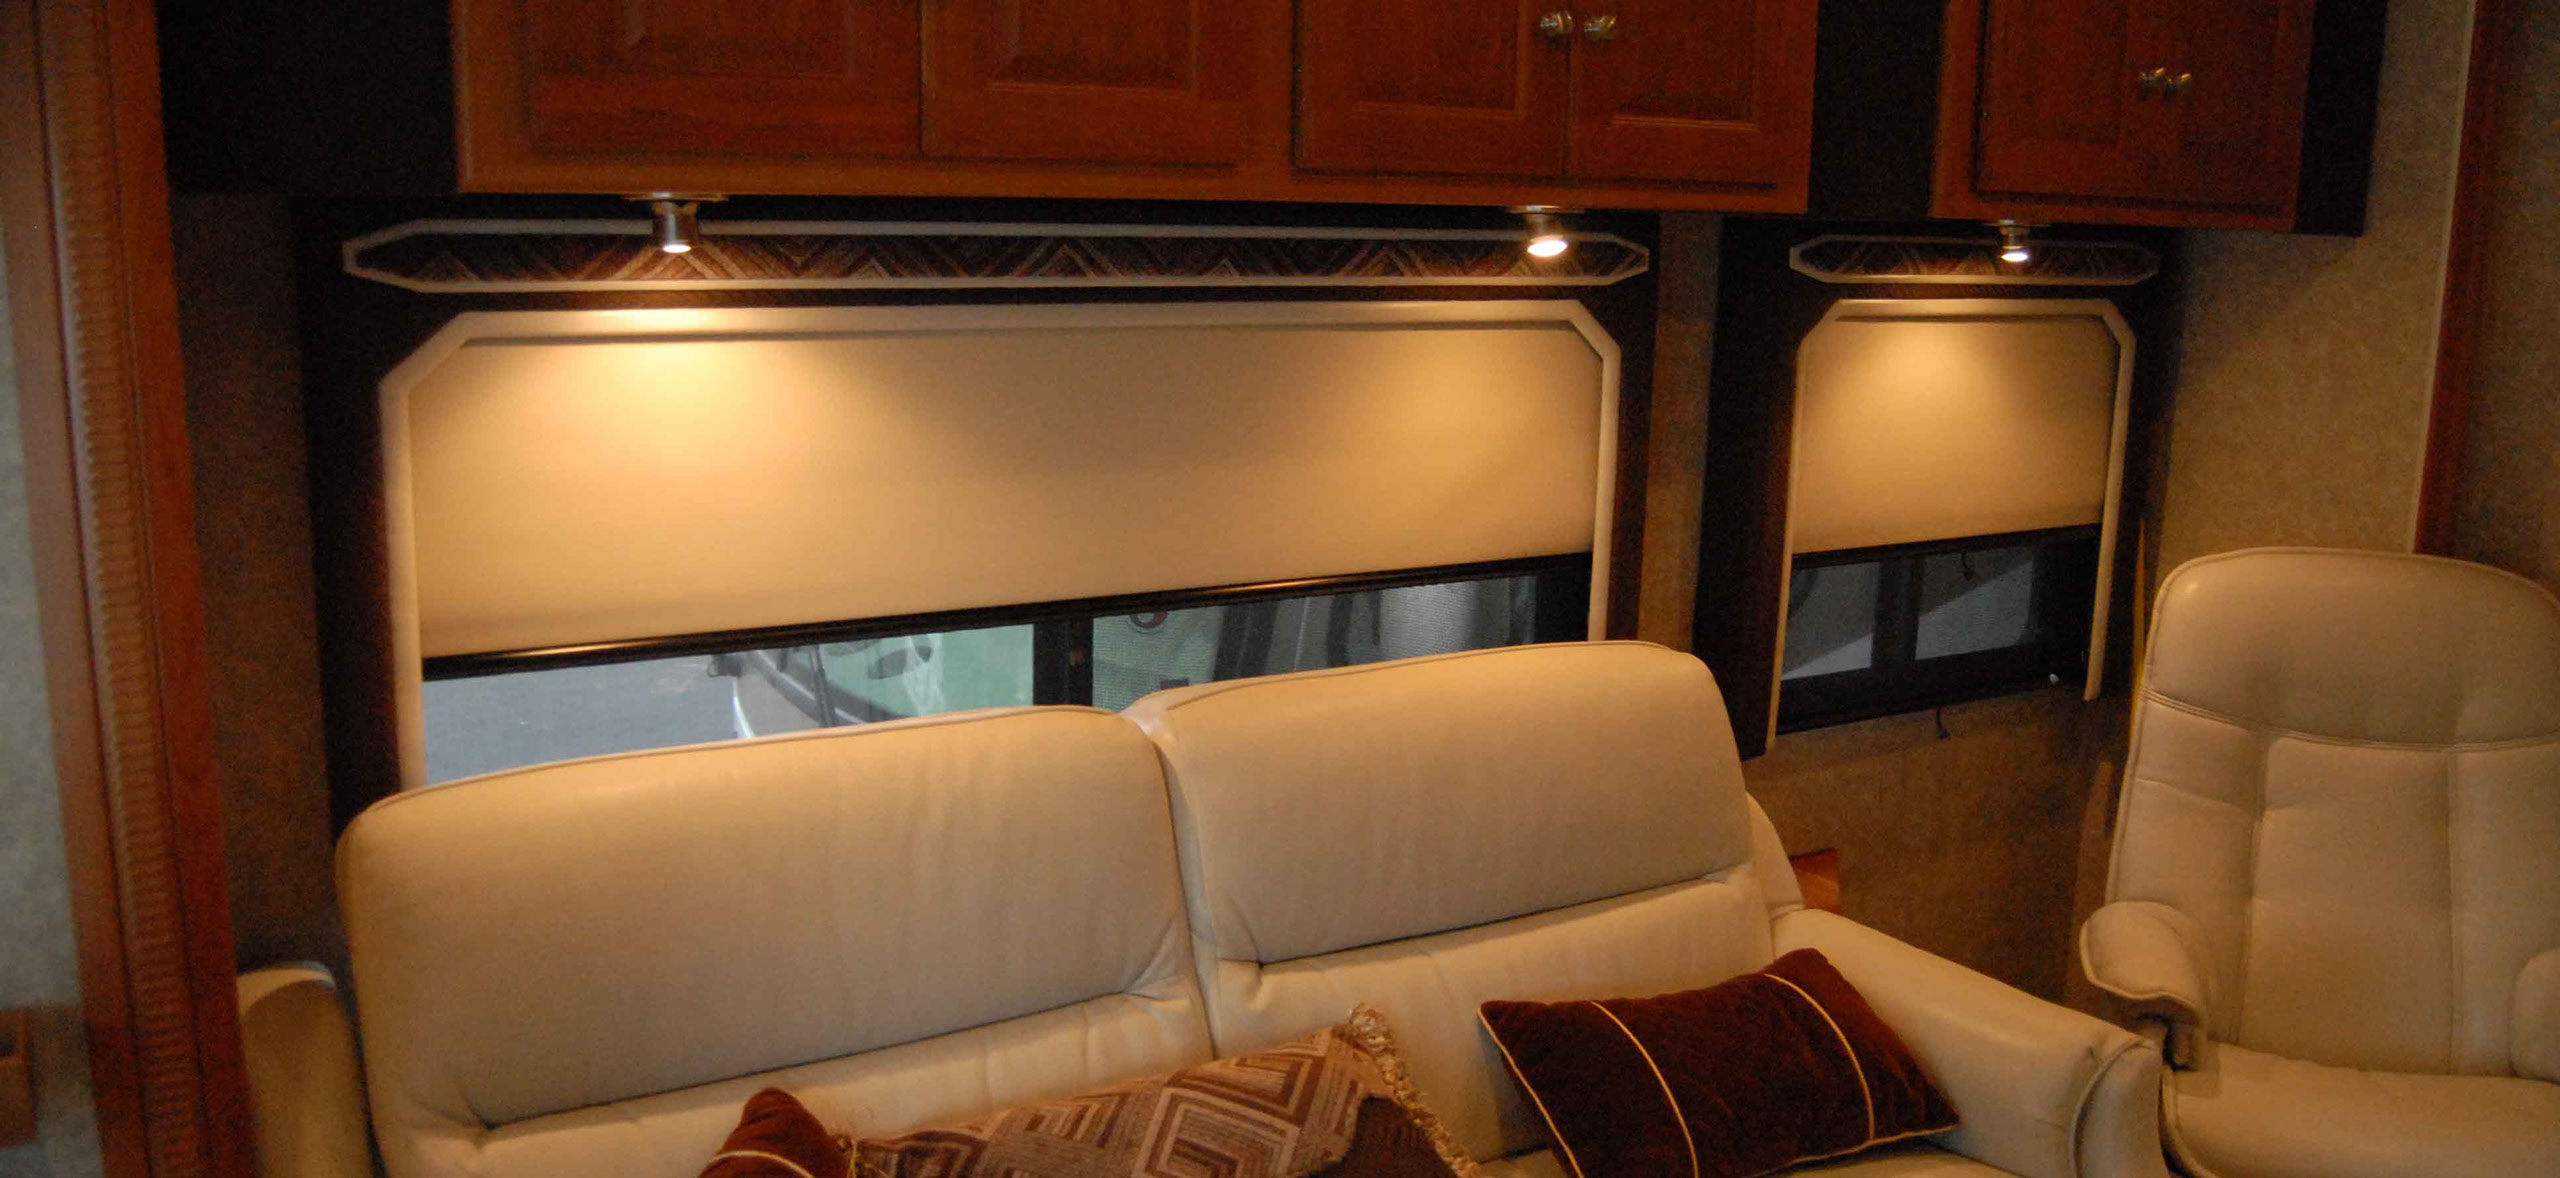 Image Result For Rollershades